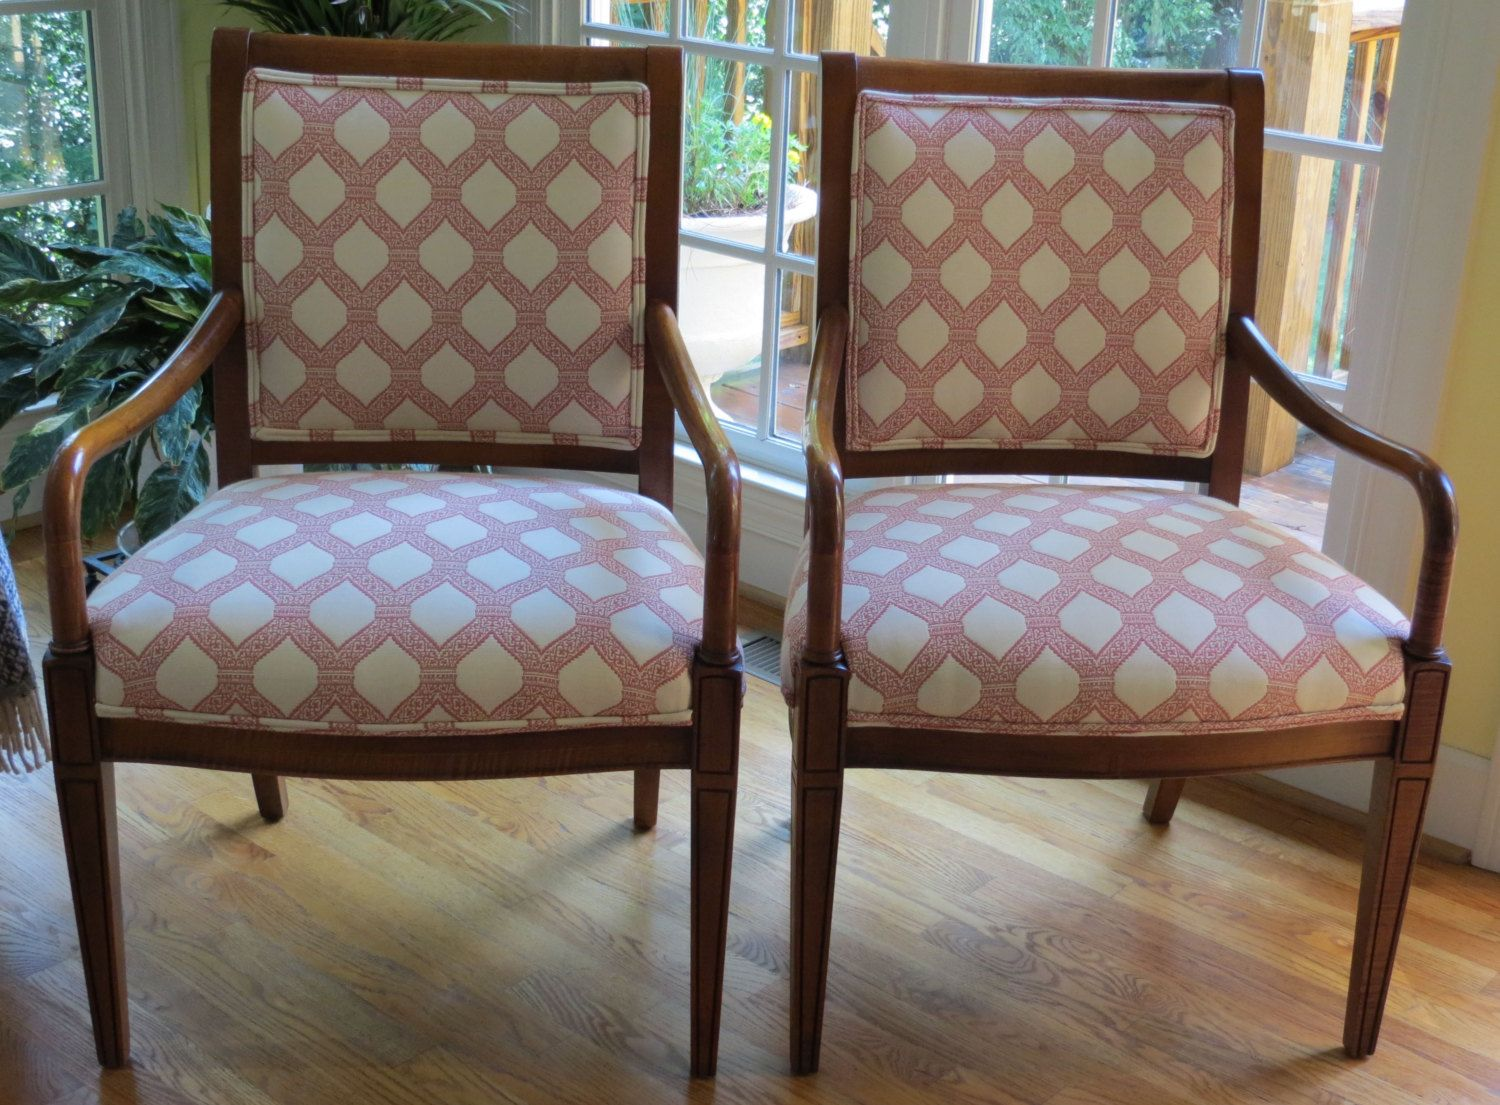 Pair Of Coral Patterned Accent Chairs Totally Refurbished By